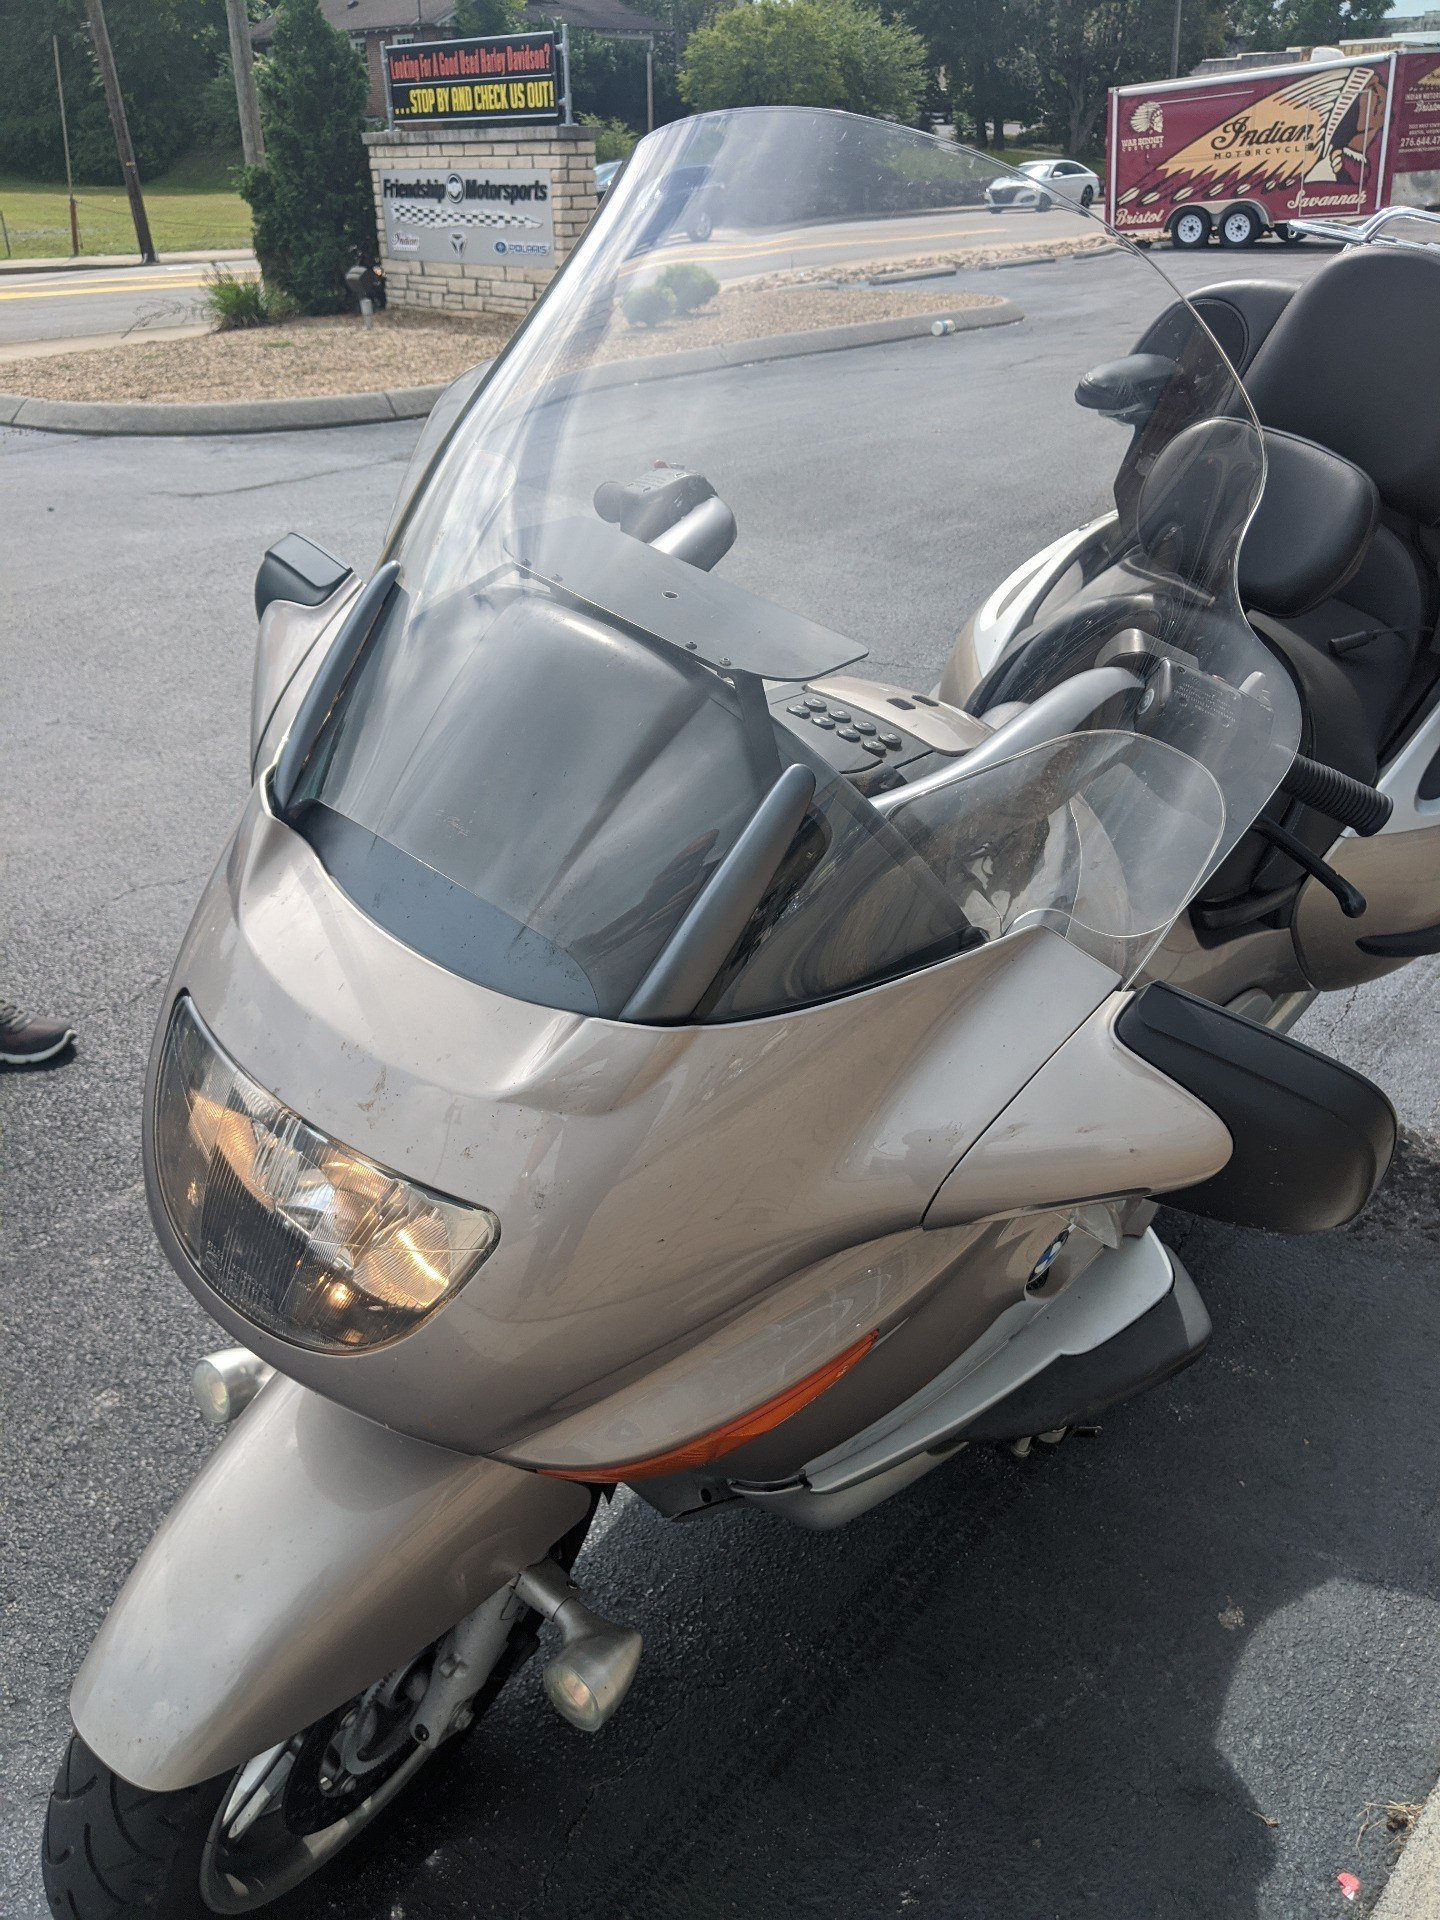 2001 BMW K 1200 LT-I in Bristol, Virginia - Photo 10